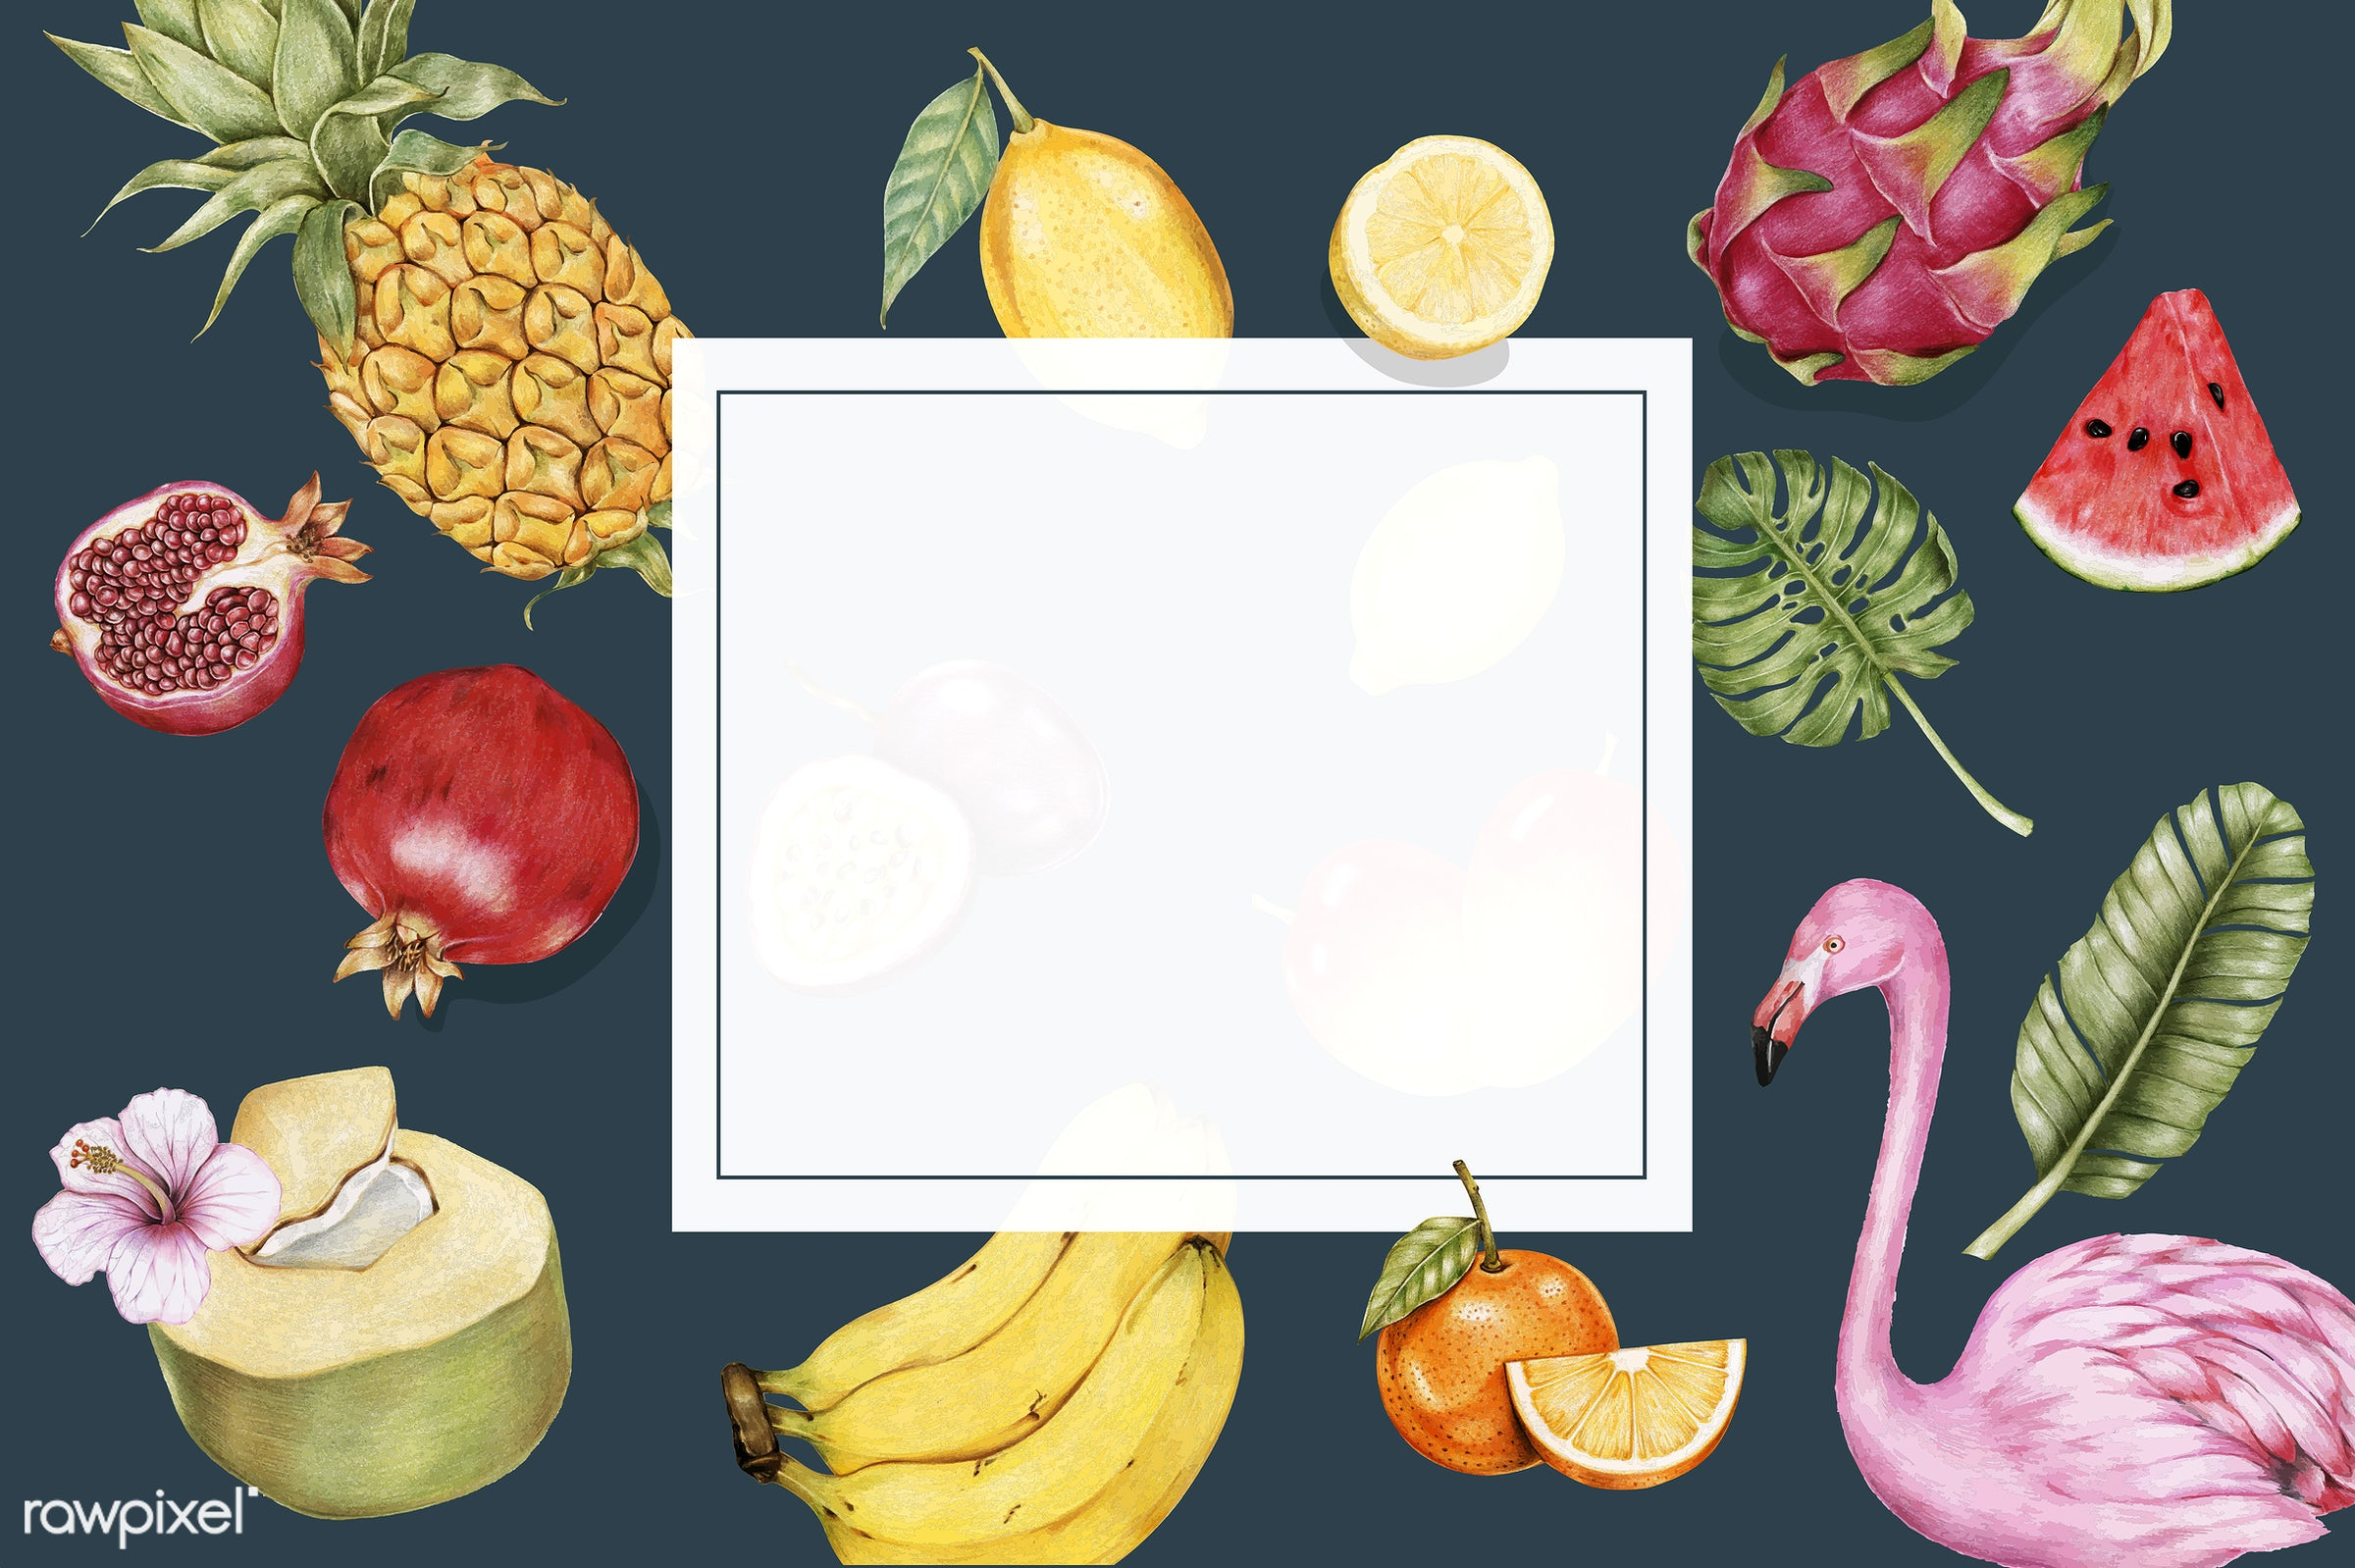 Illustration of tropical fruits watercolor style - agriculture, drawing, eat, farm, food, fresh, fruits, graphic, healthcare...